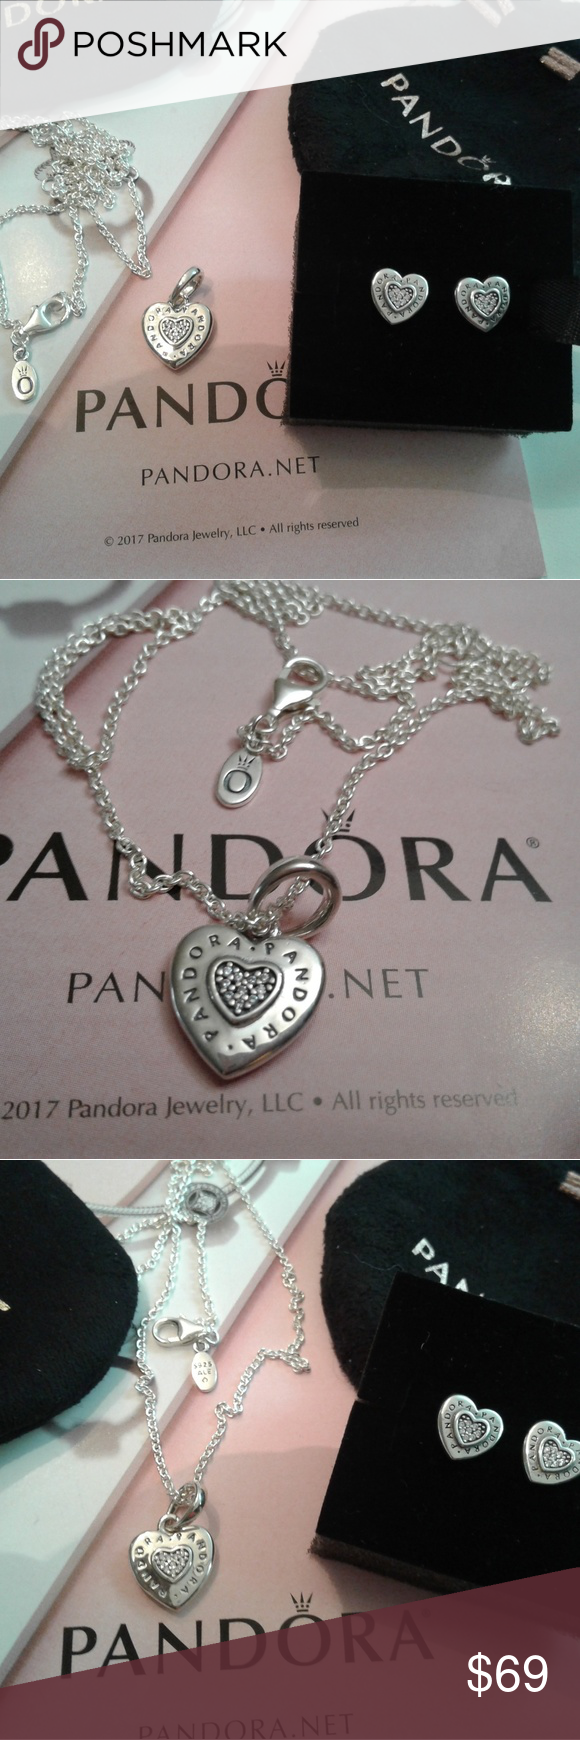 bef488da6 Chain · Heart Pendants · 3 piece authentic Pandora Signature earring Heart 3  piece authentic Pandora signature heart earring charm and